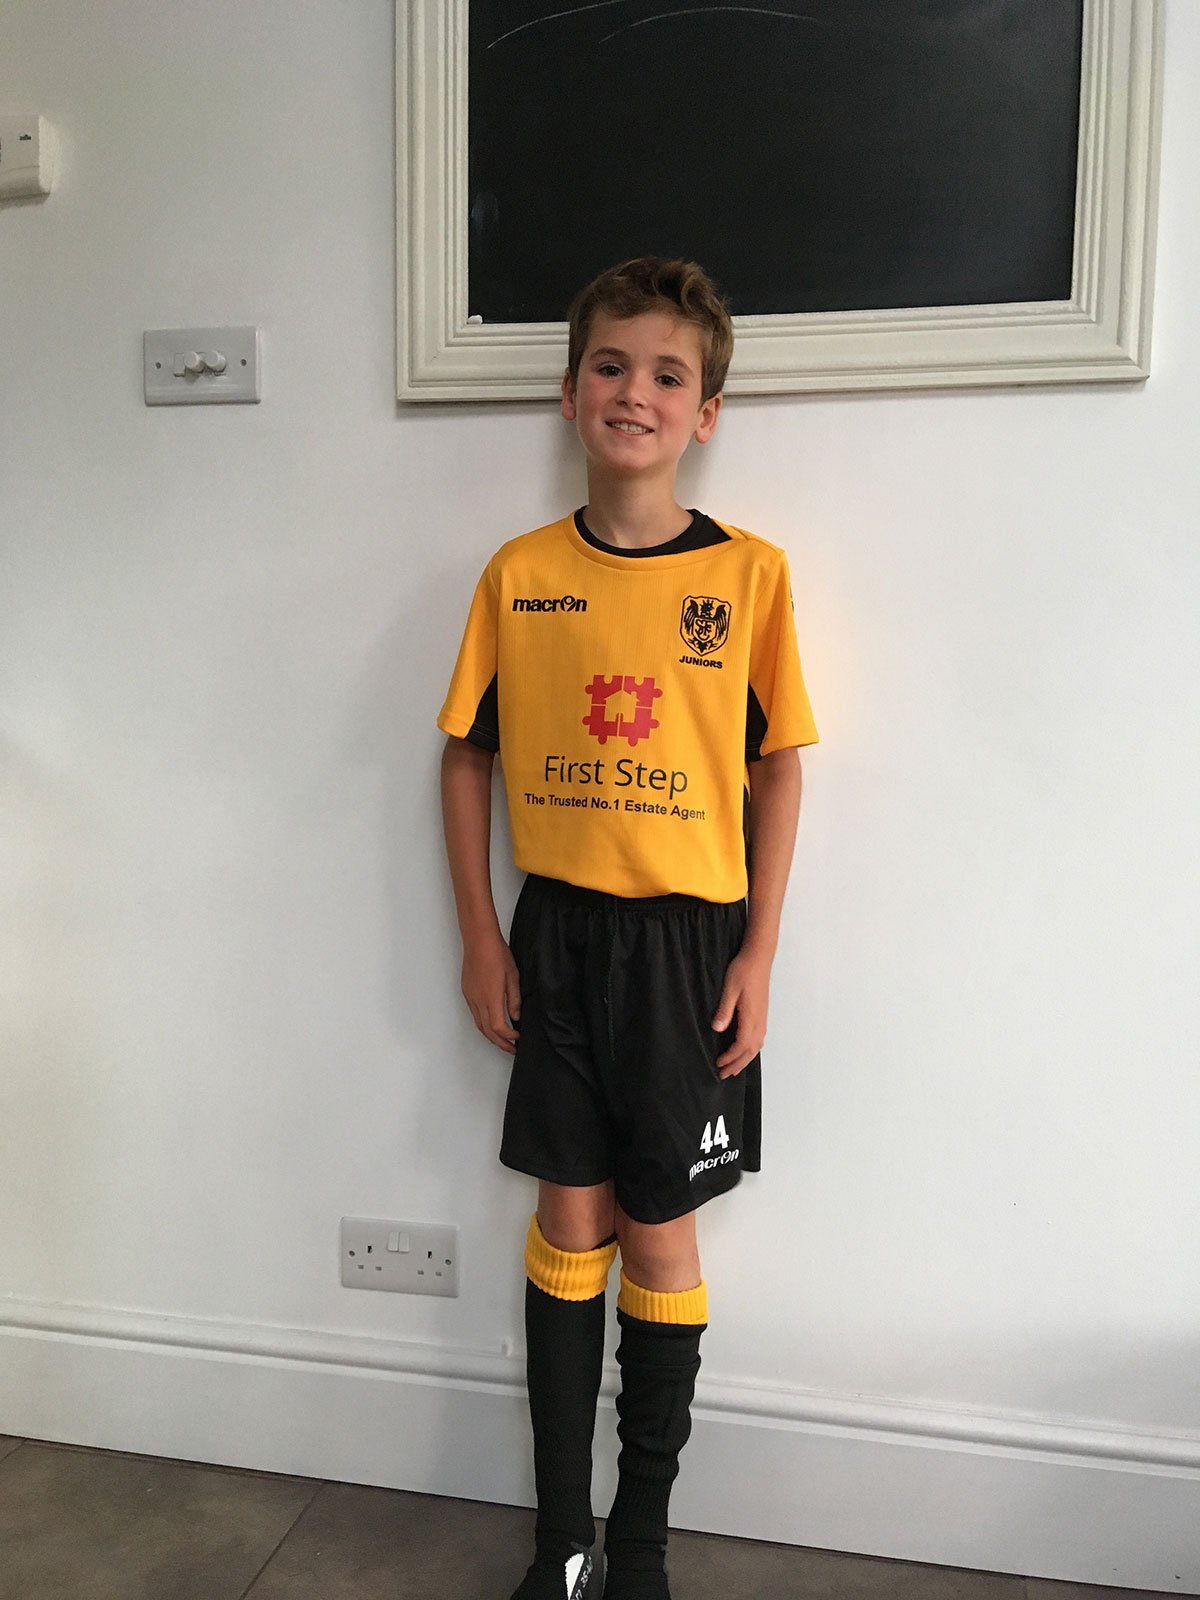 Ben modelling the new kit for the team